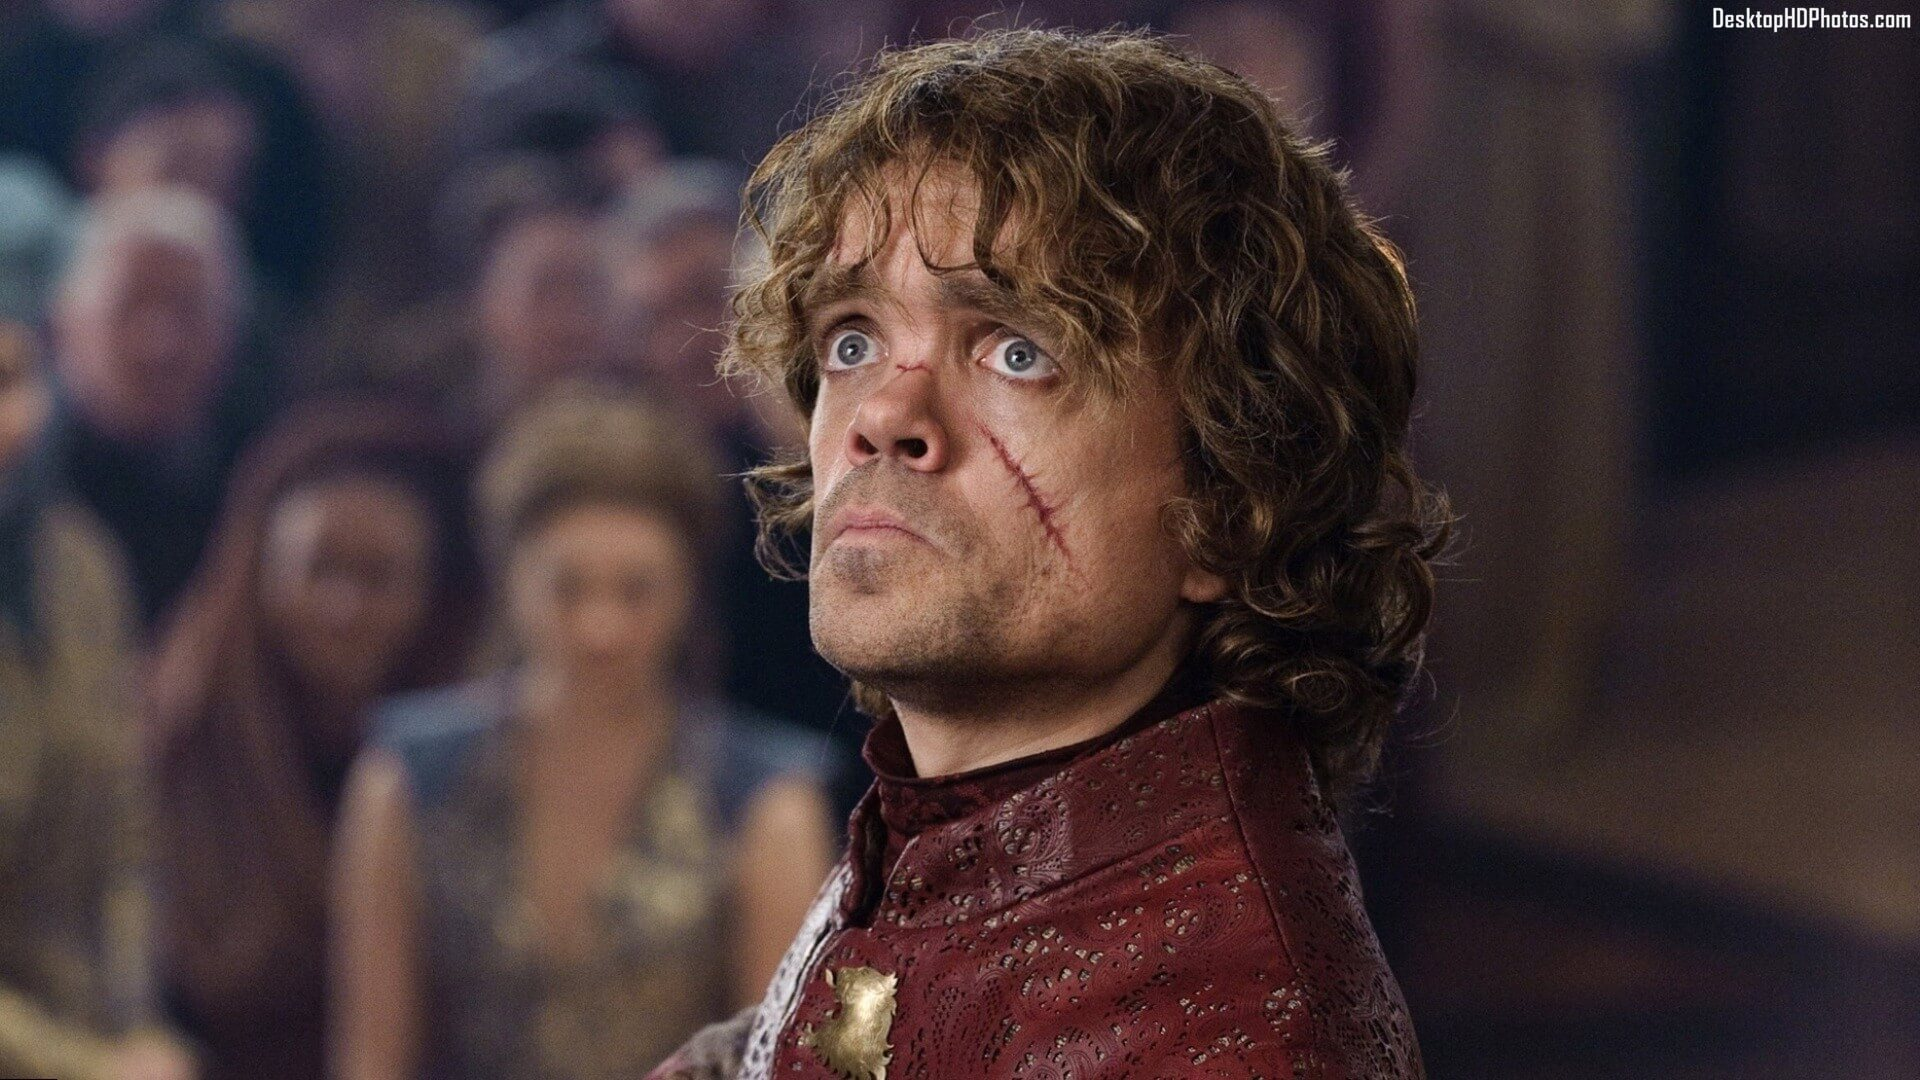 Peter Dinklage to Star in The Toxic Avenger